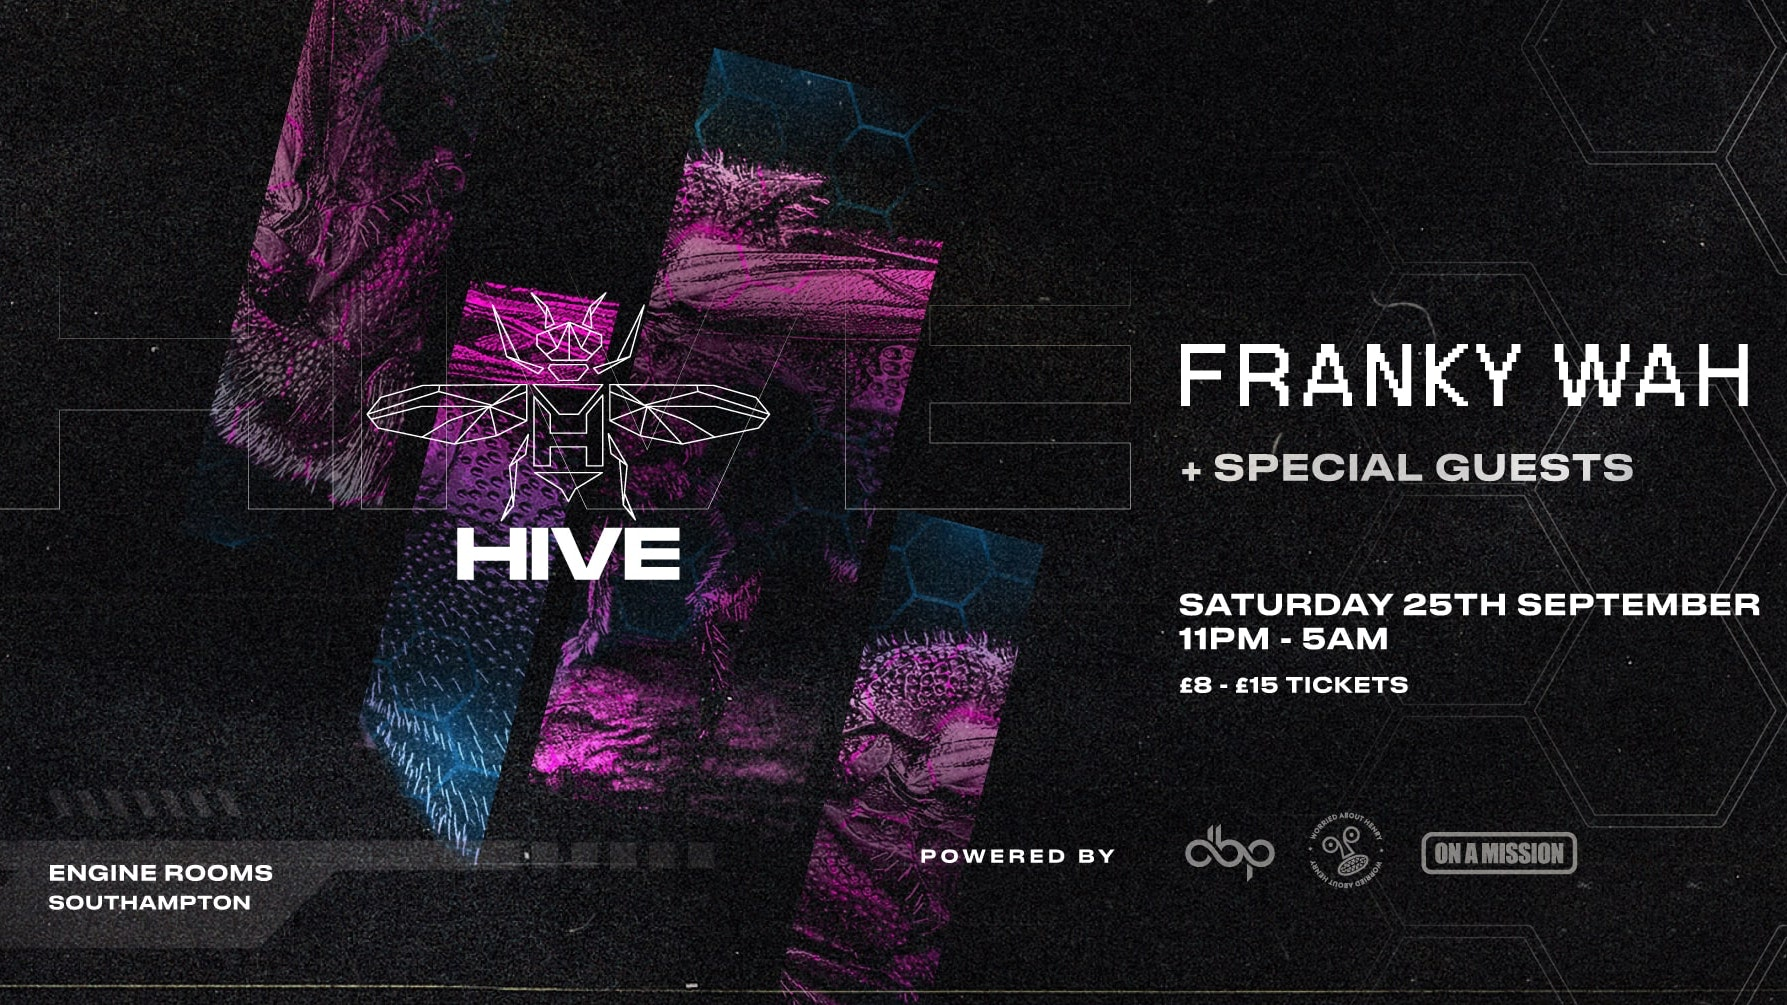 Saturday 25th Sept: Hive presents: Franky Wah + Special guests